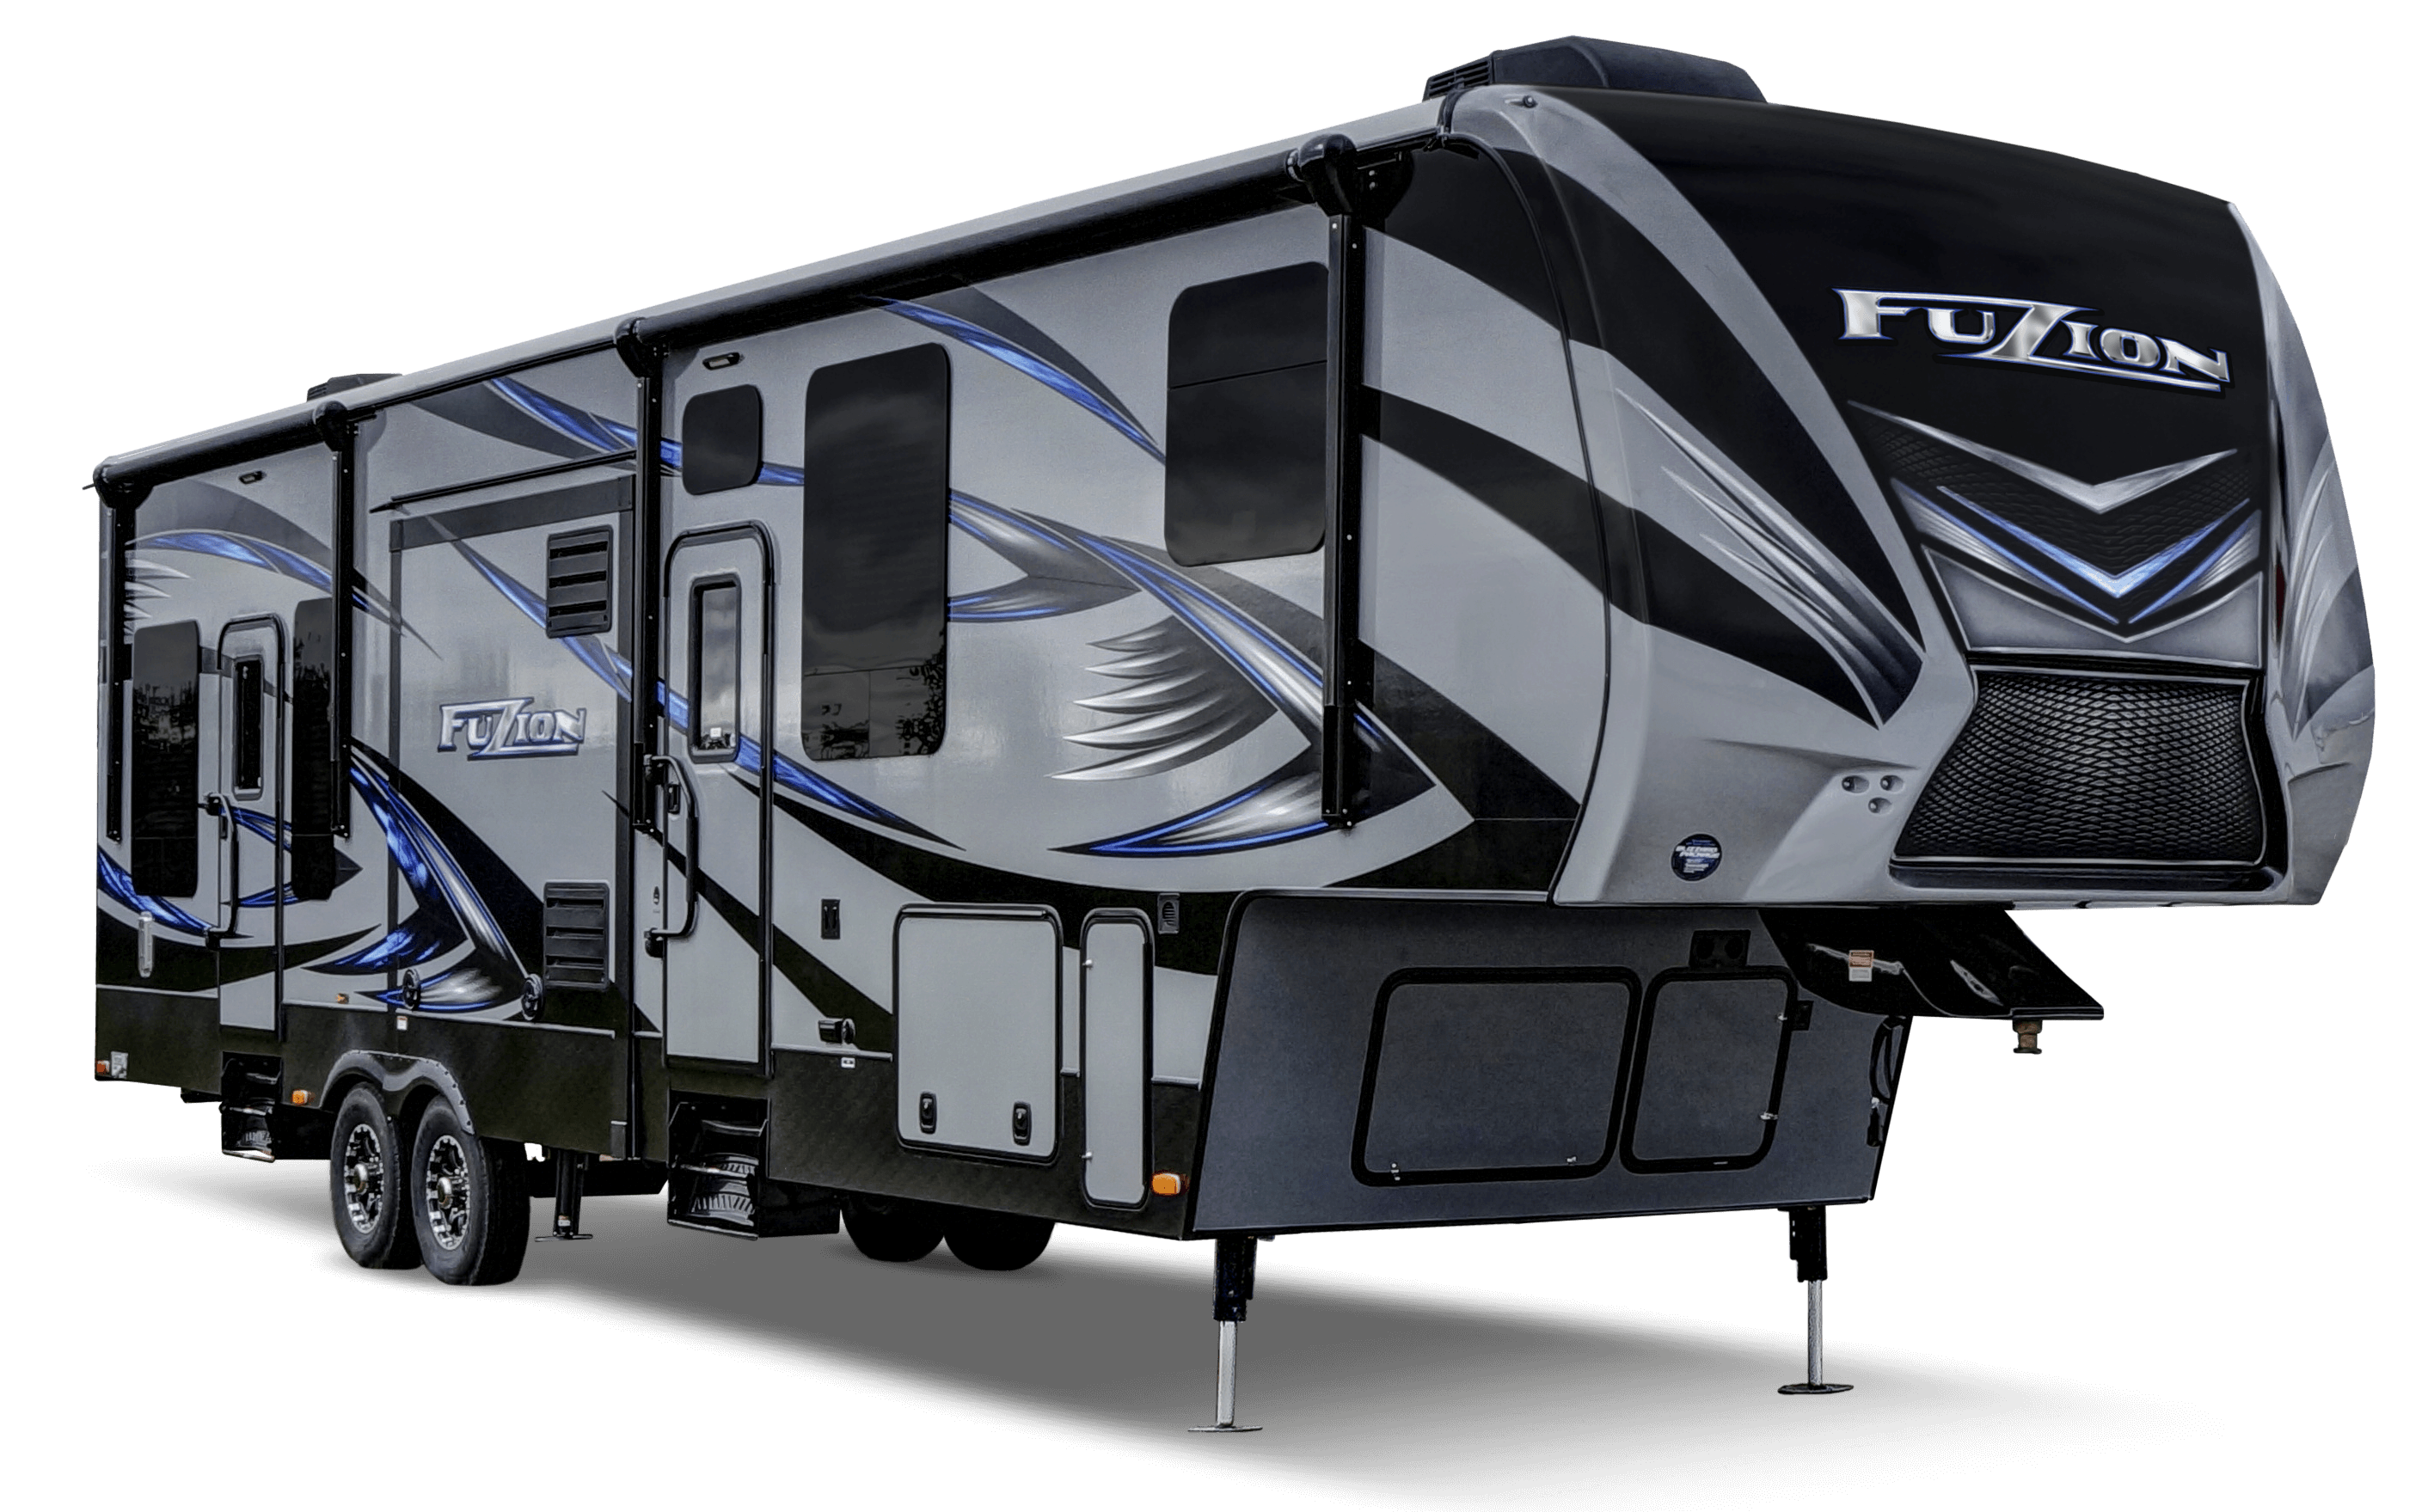 Keystone Fuzion Toy Hauler Fifth Wheel